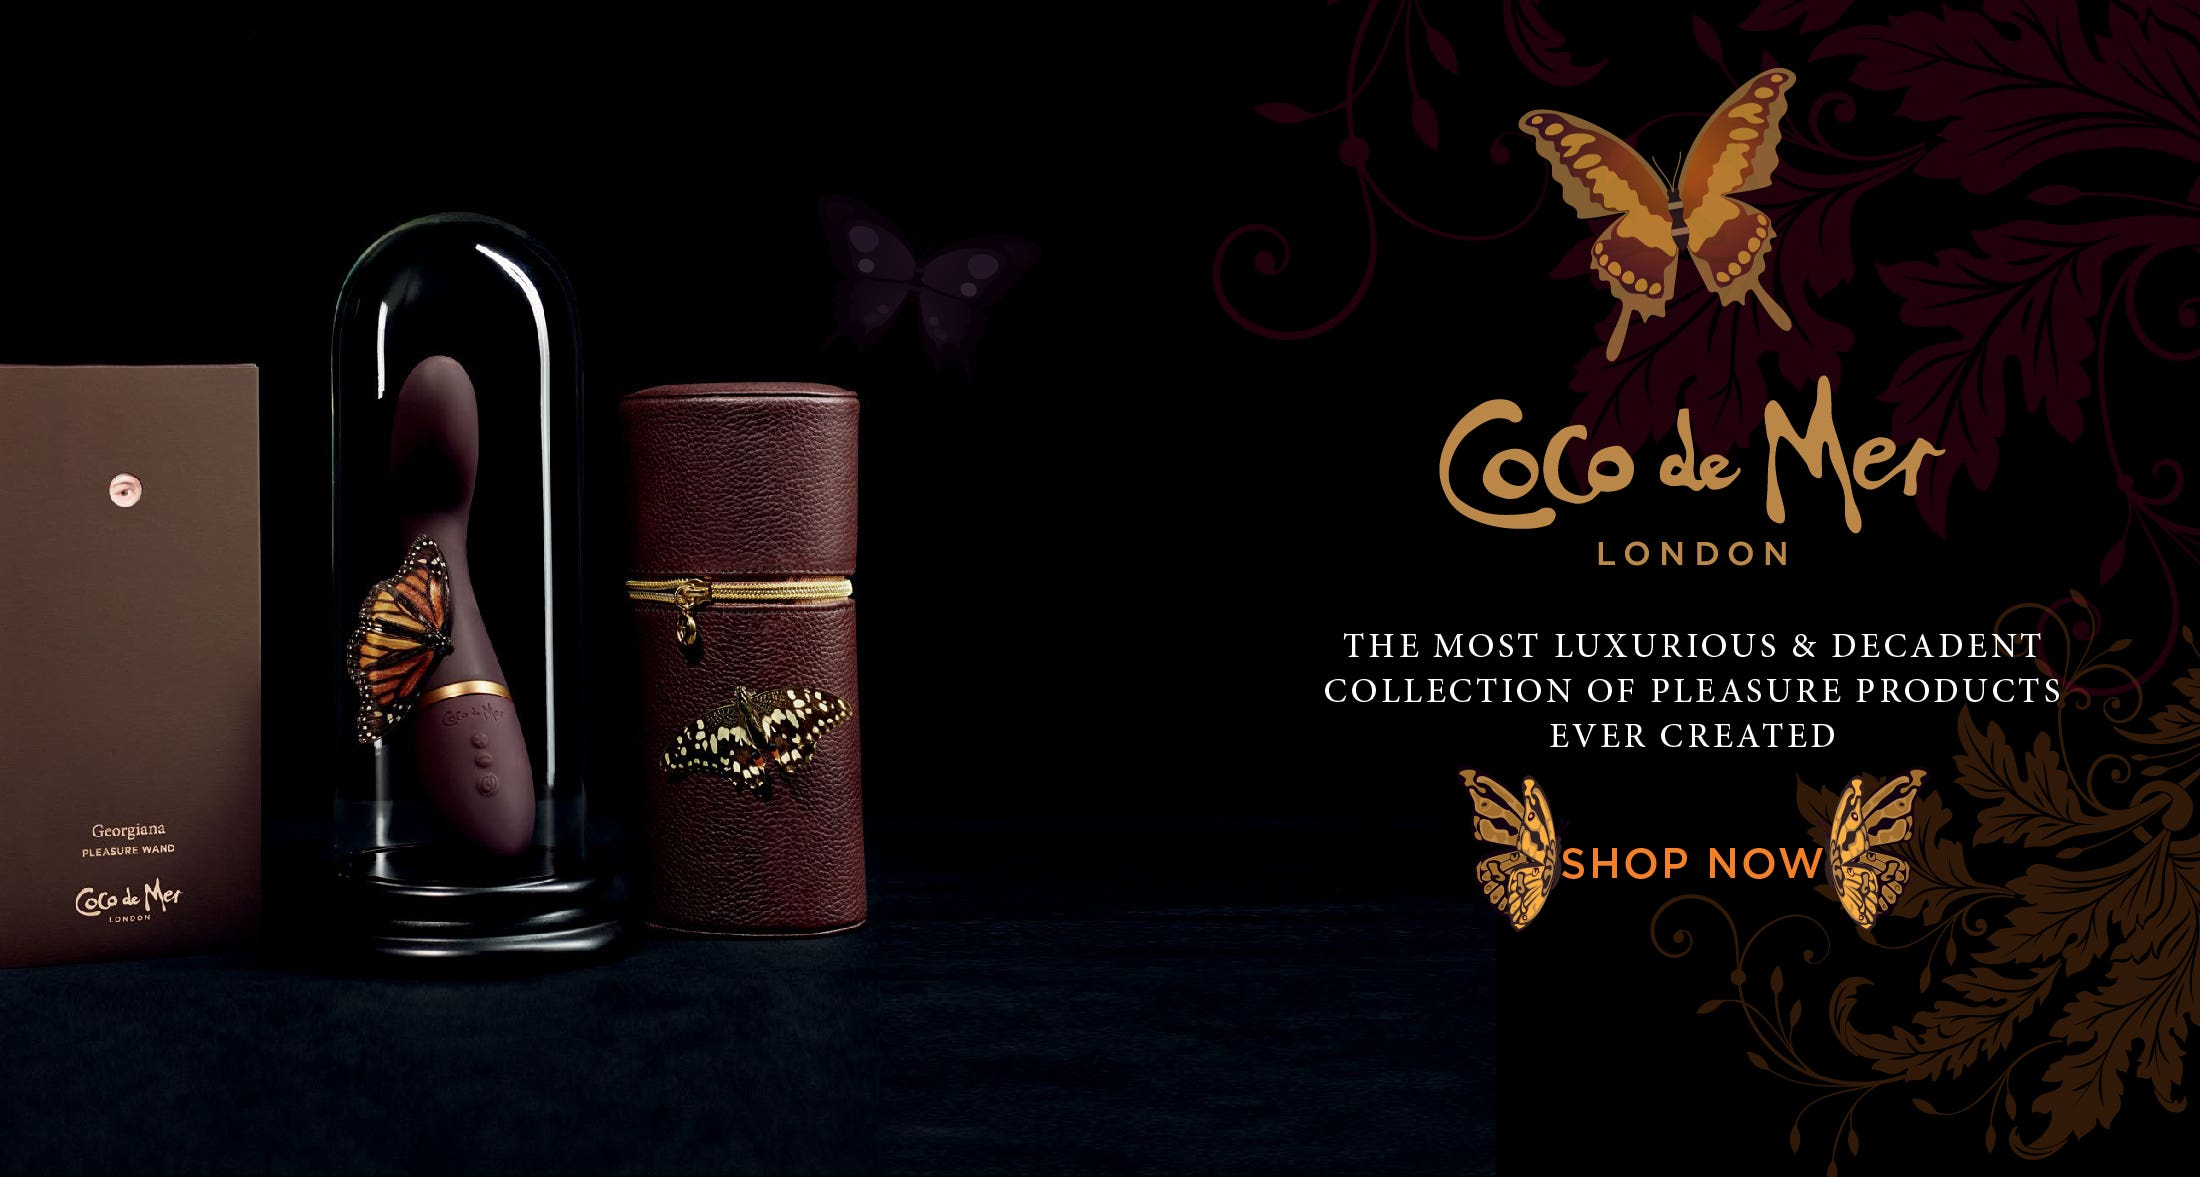 Coco De Mer - The Most Luxury London Collection